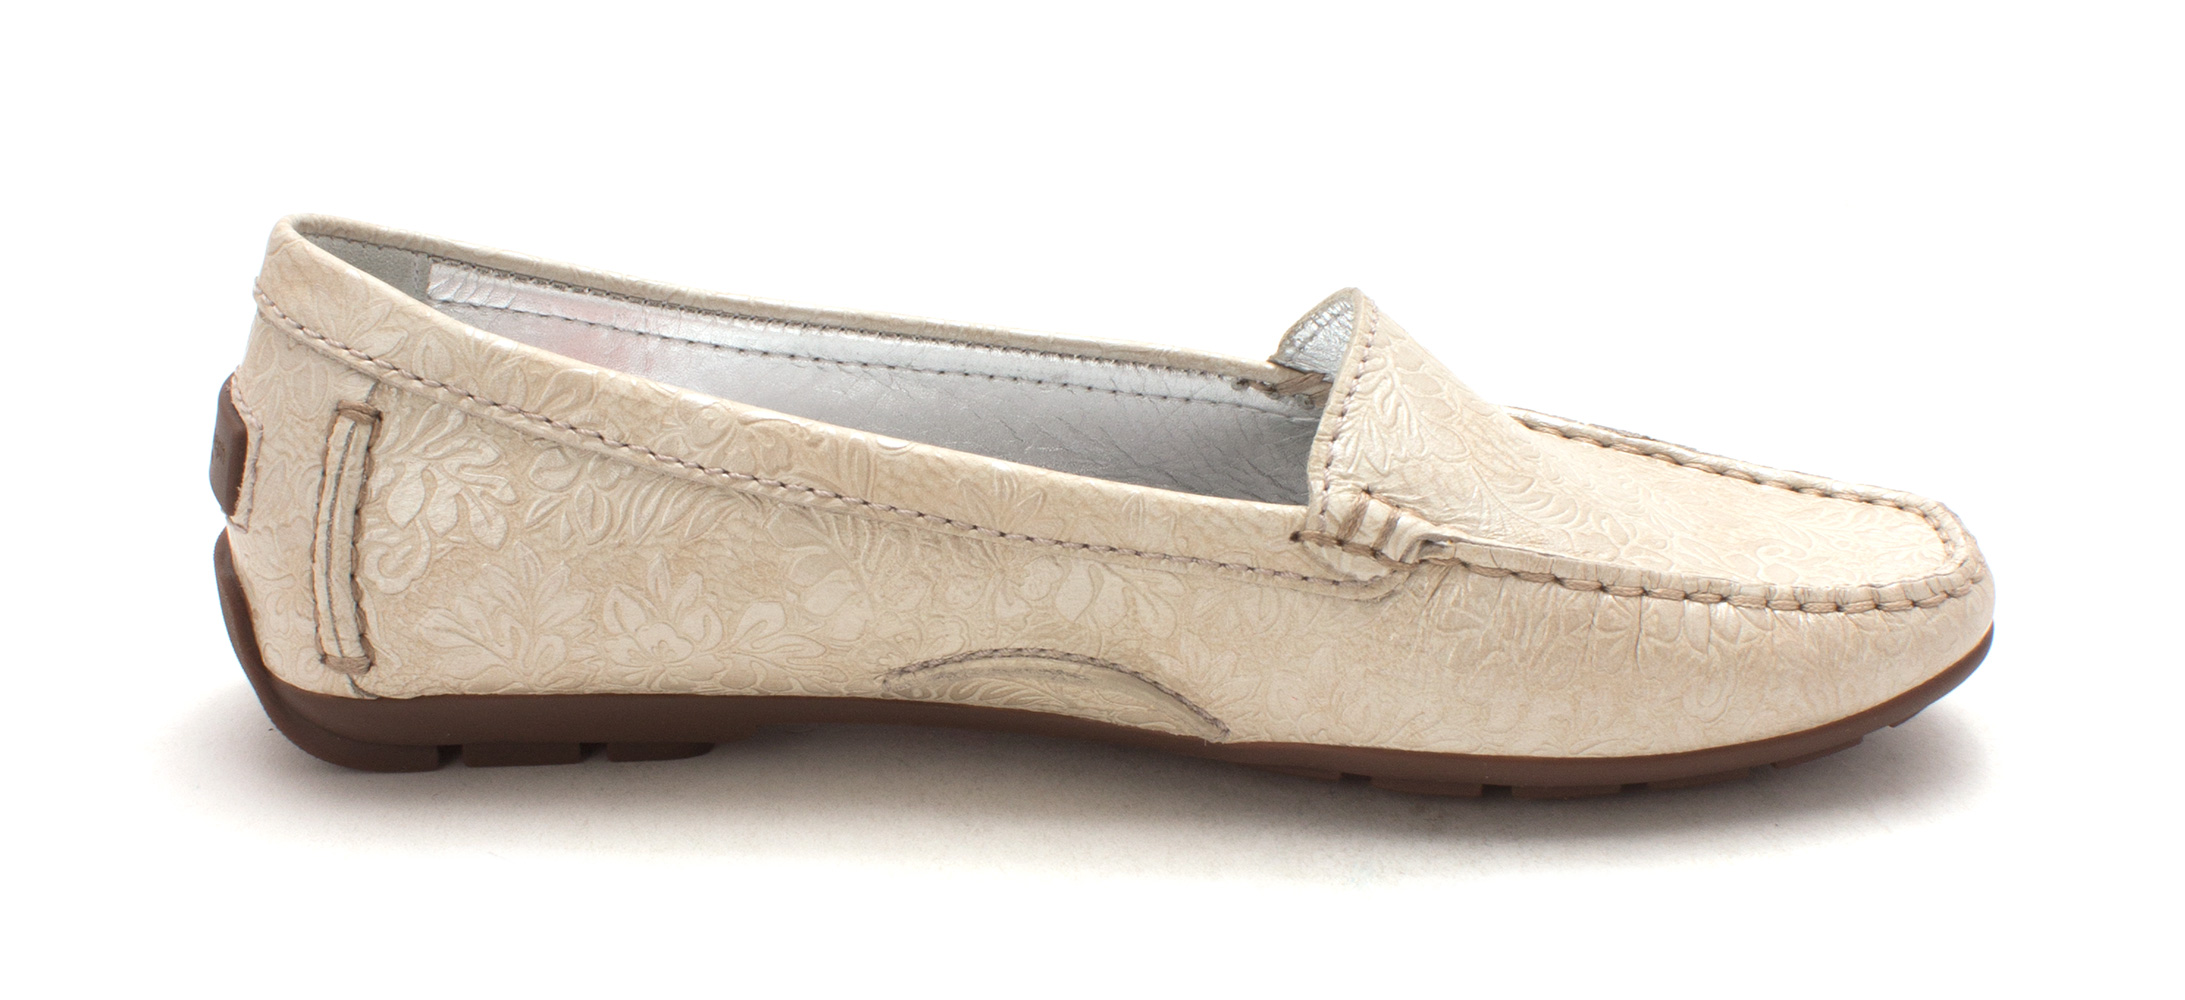 c9d4a9507aa Marc Joseph New York Womens Manhasset Closed Toe Loafers